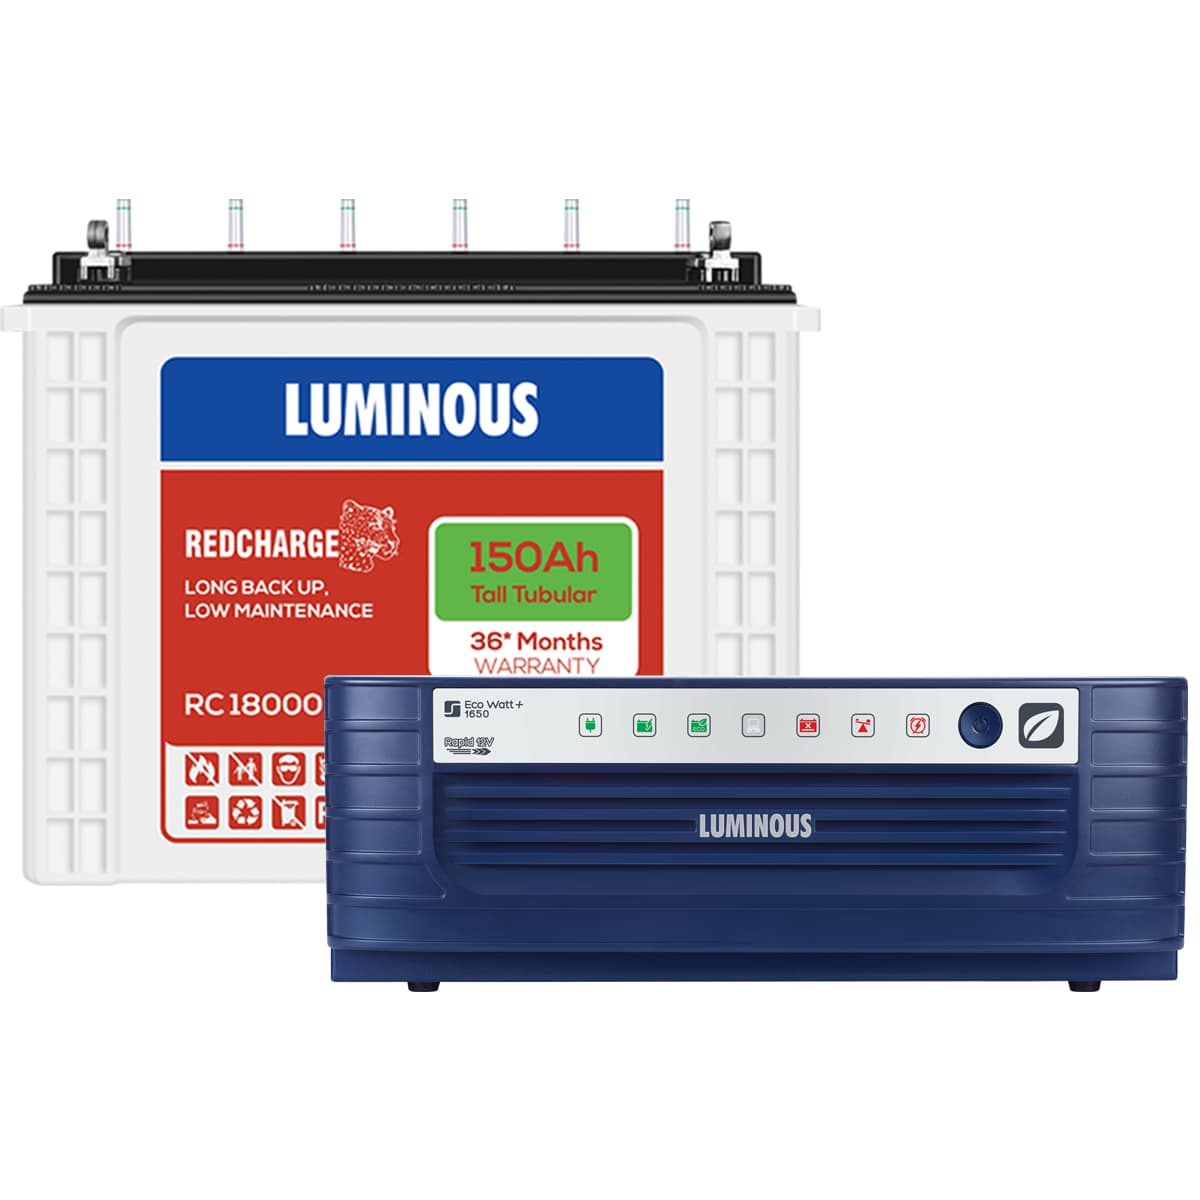 Luminous Eco Watt+ Rapid 1650 + Red Charge RC 18000